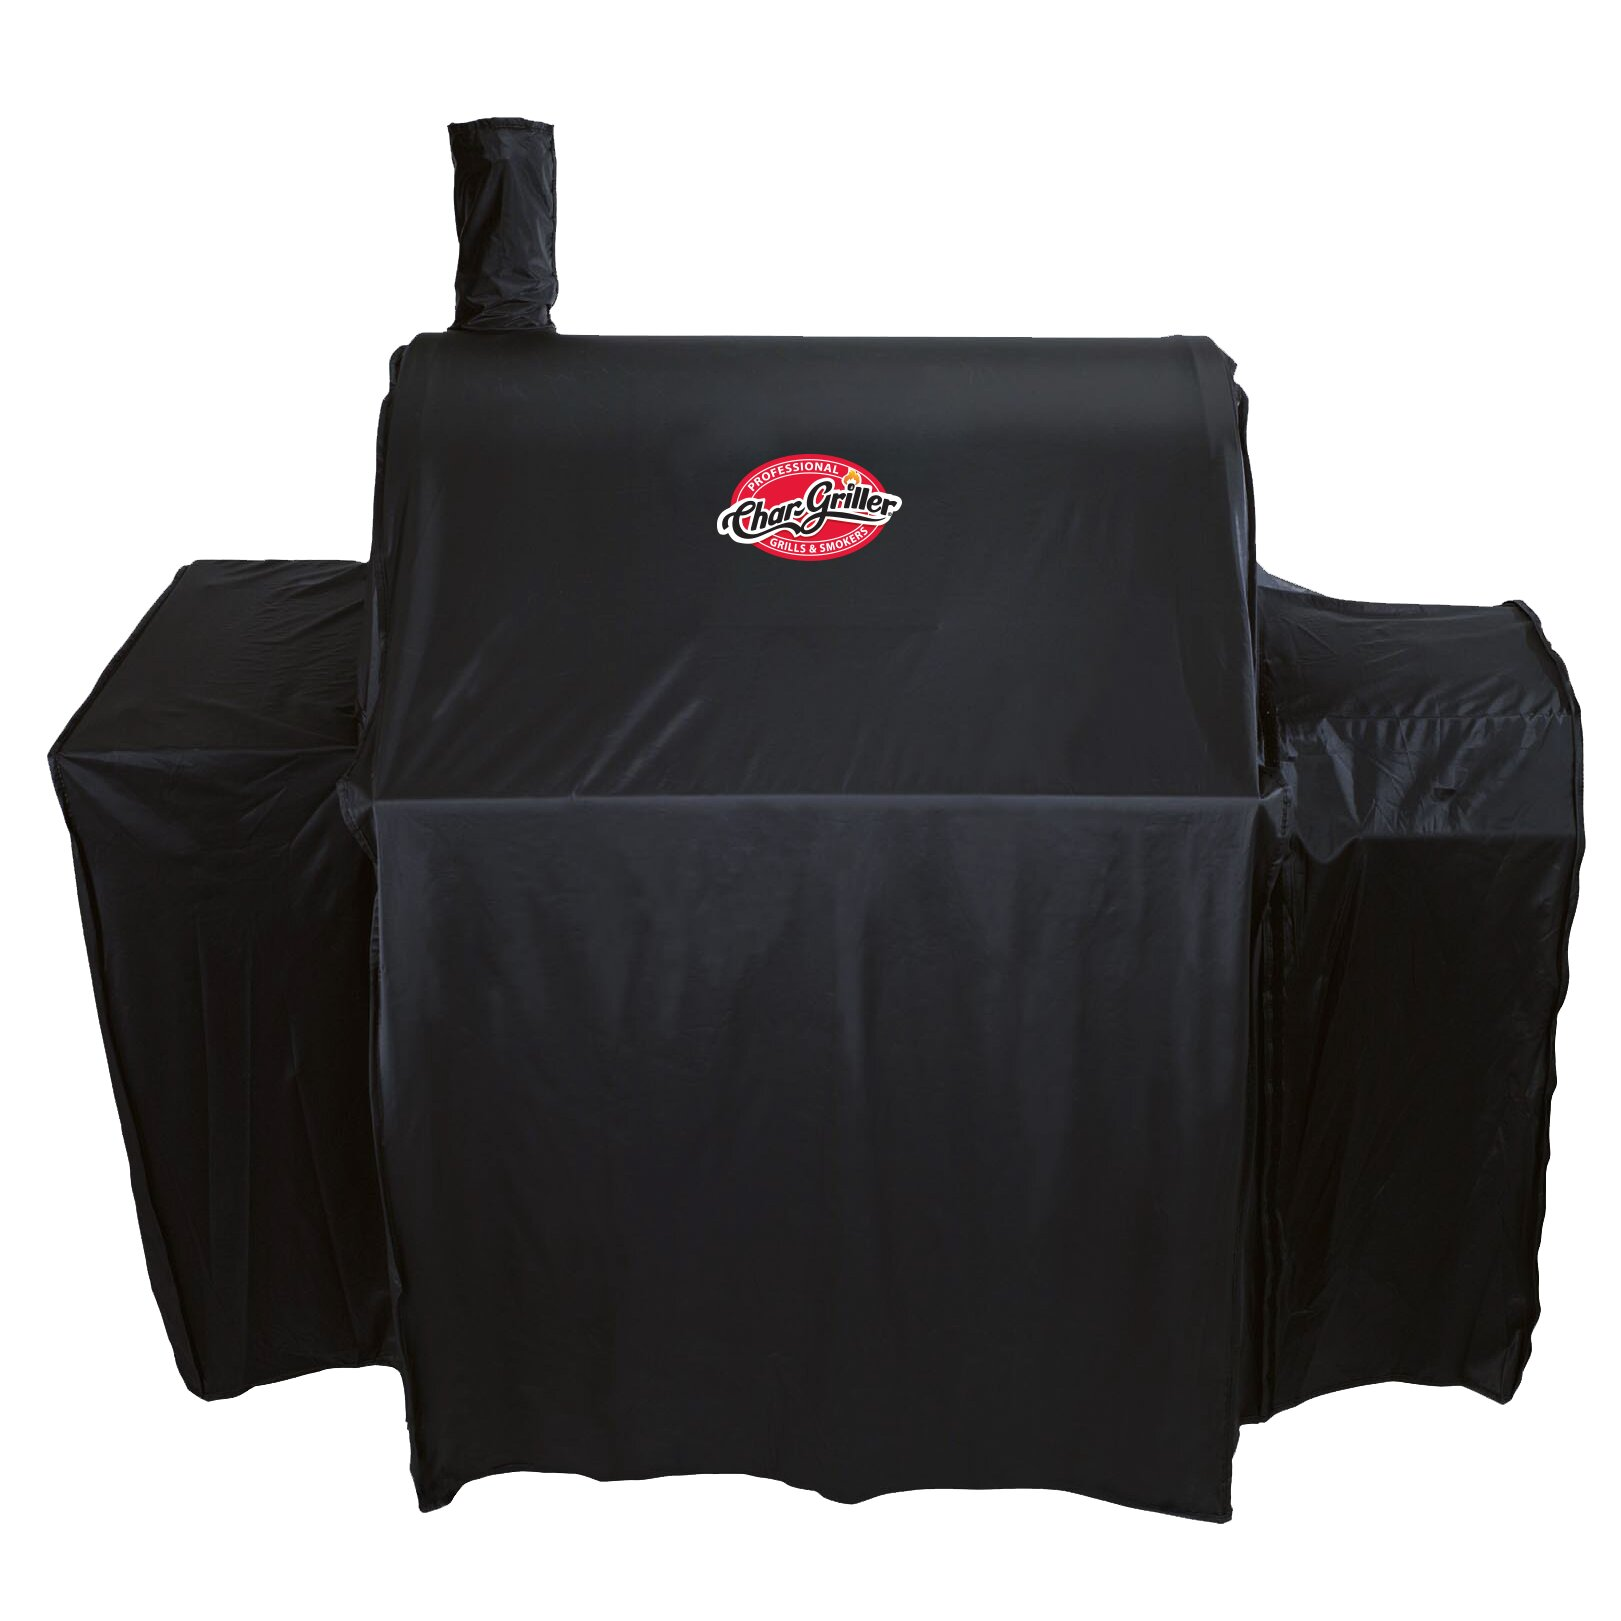 Char Griller Pro Deluxe Mid Size Charcoal Grill Cover